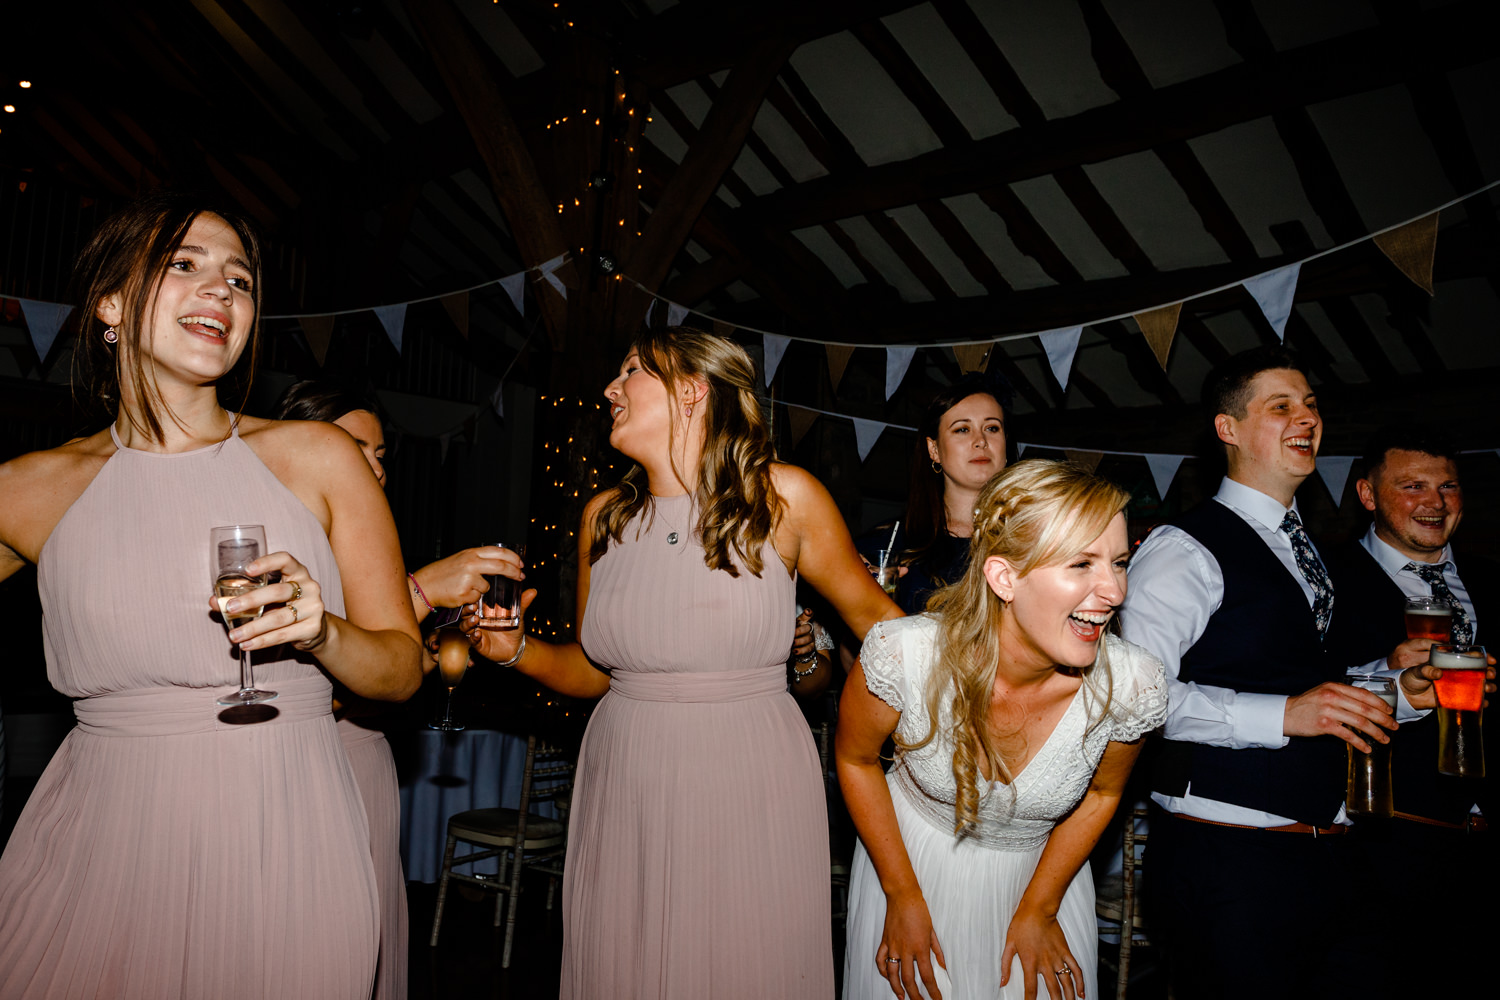 Katie-Luke-Huddersfield-wedding-photographer-Katie-Luke092.jpg